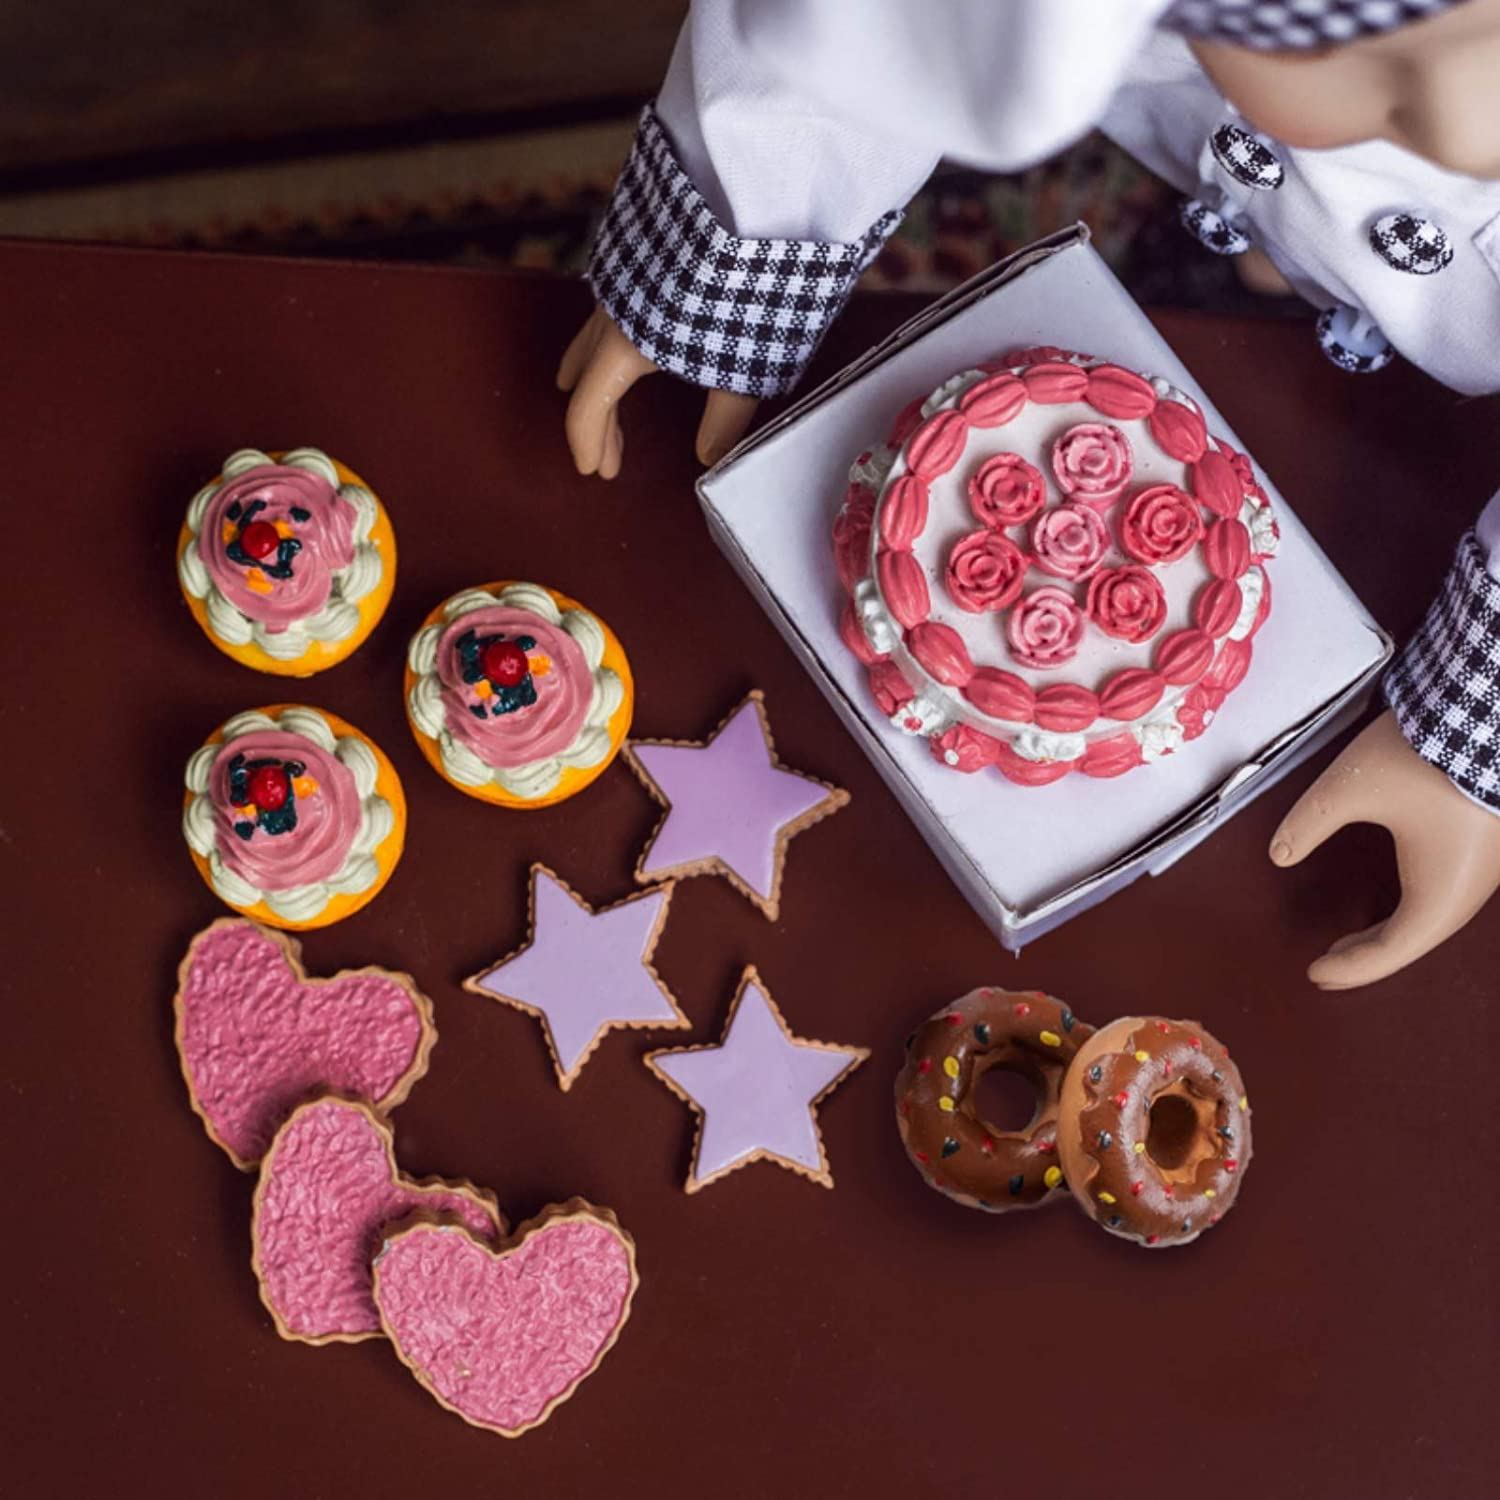 The Queen's Treasures American Bakery Collection Party Set Includes Cookies, Cupcakes, Doughnuts, and a Party Cake. Food Accessories Designed to be Compatible with 18 Inch Girl Dolls.